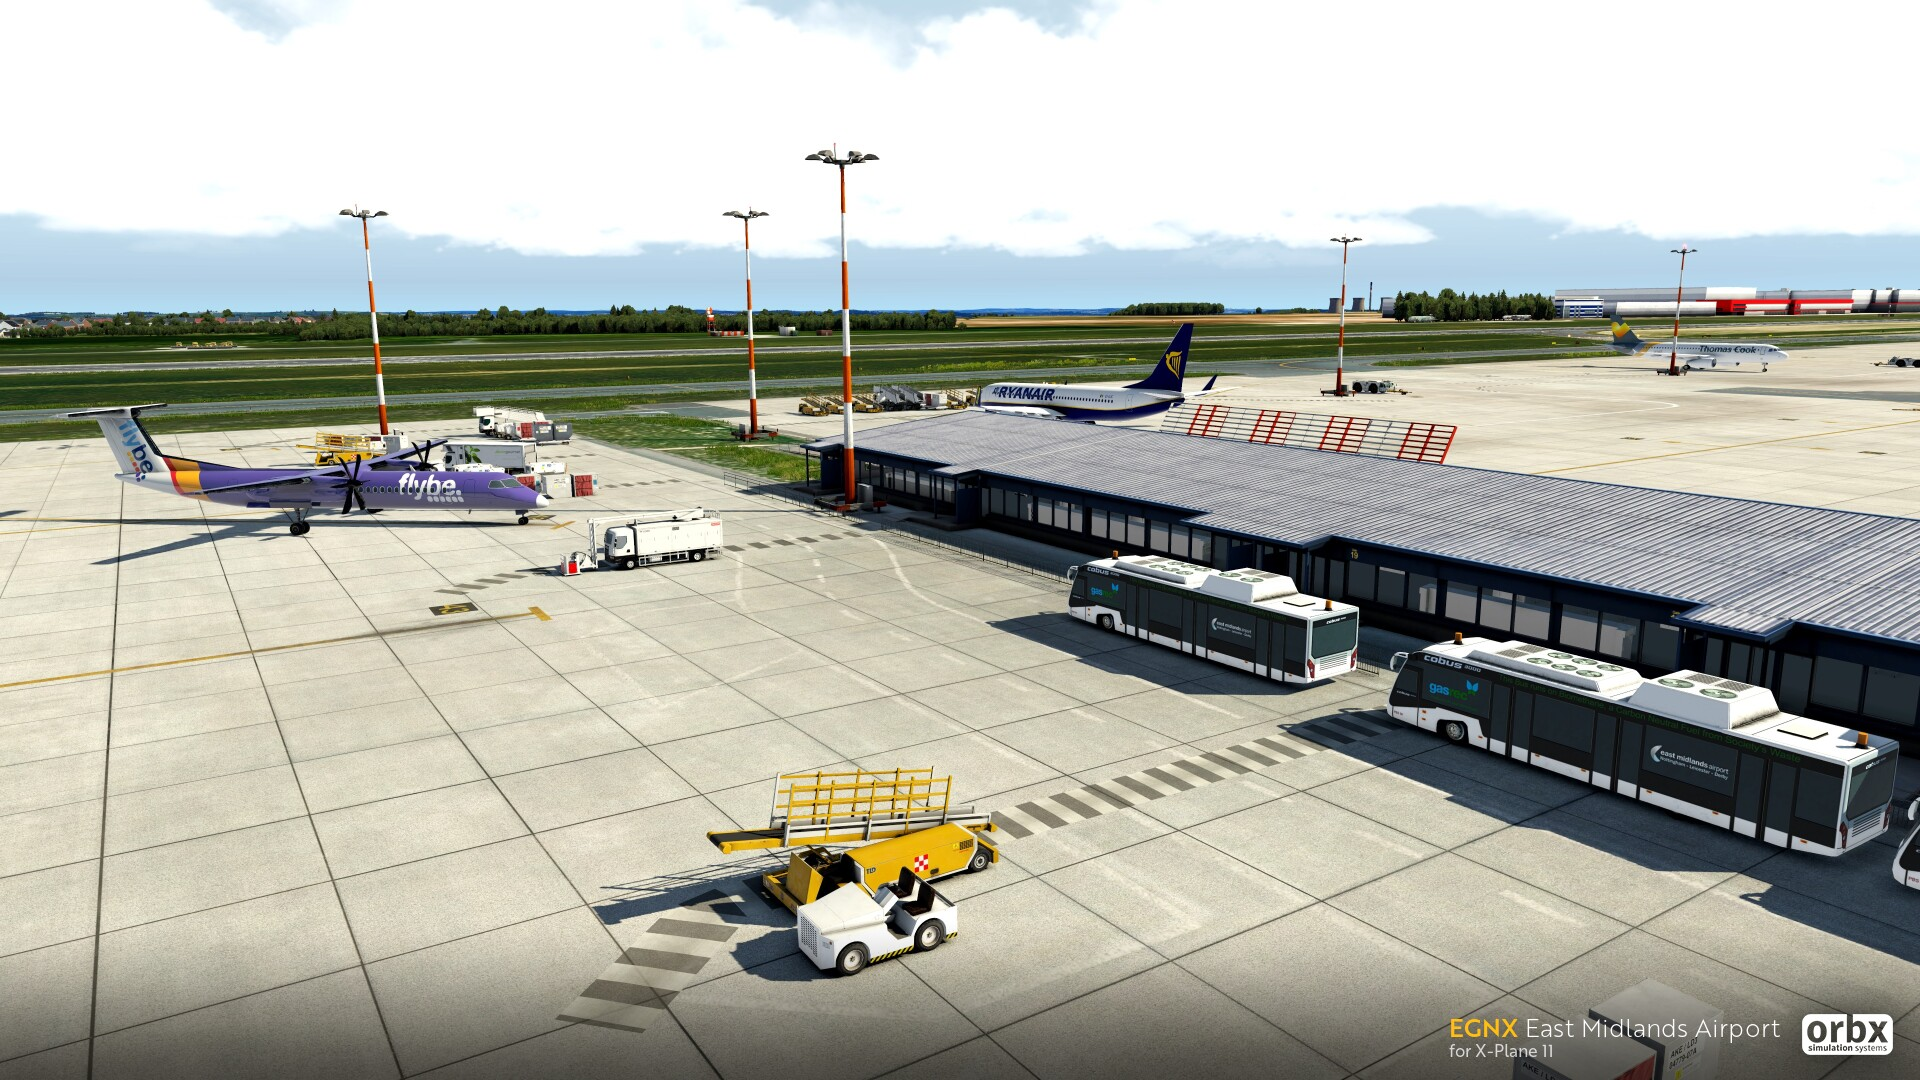 EGNX East Midlands Airport coming soon for X-Plane 11